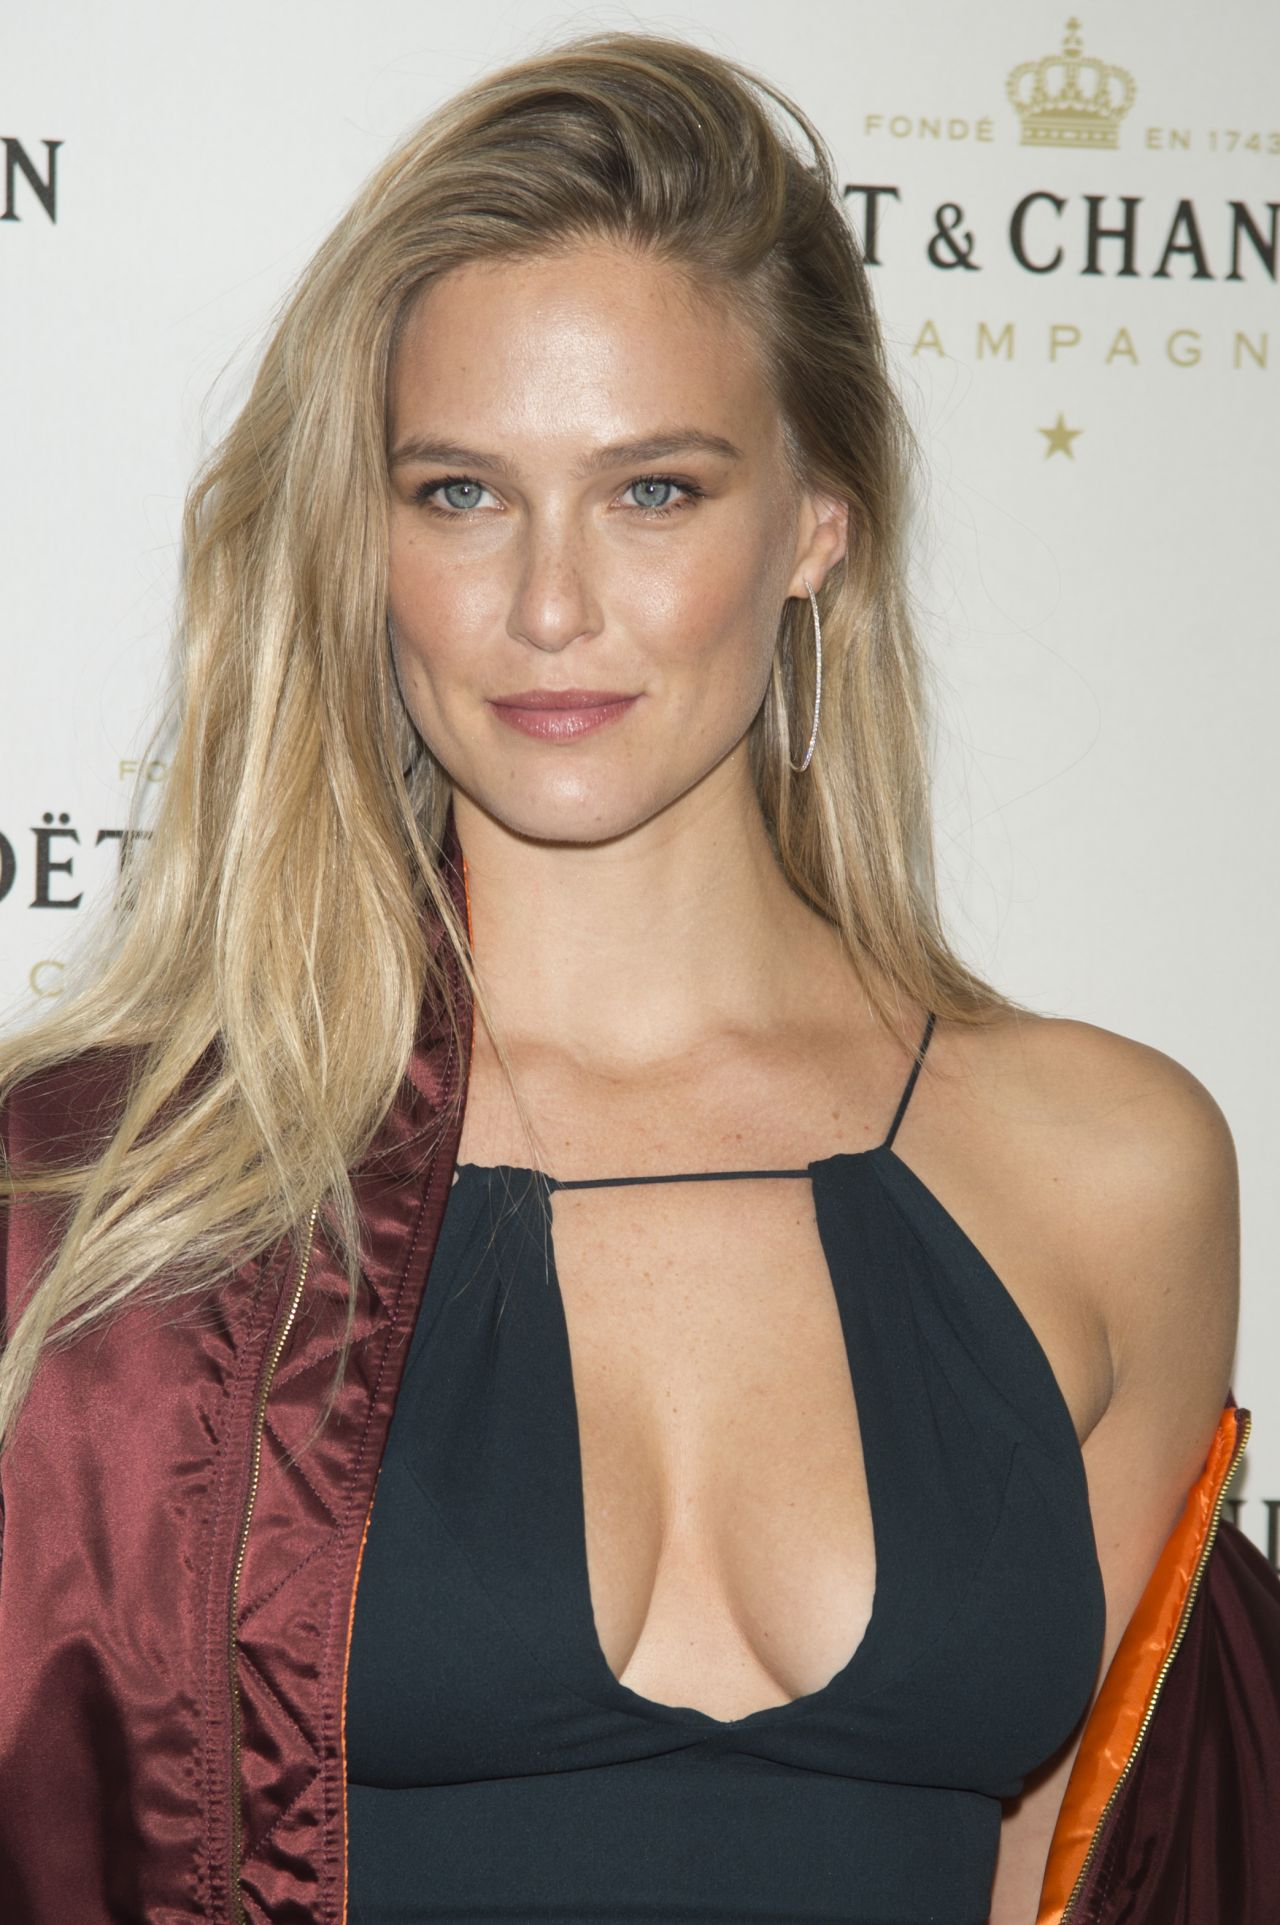 bar-refaeli-moet-chandon-party-in-madrid-11-29-2016-1.jpg